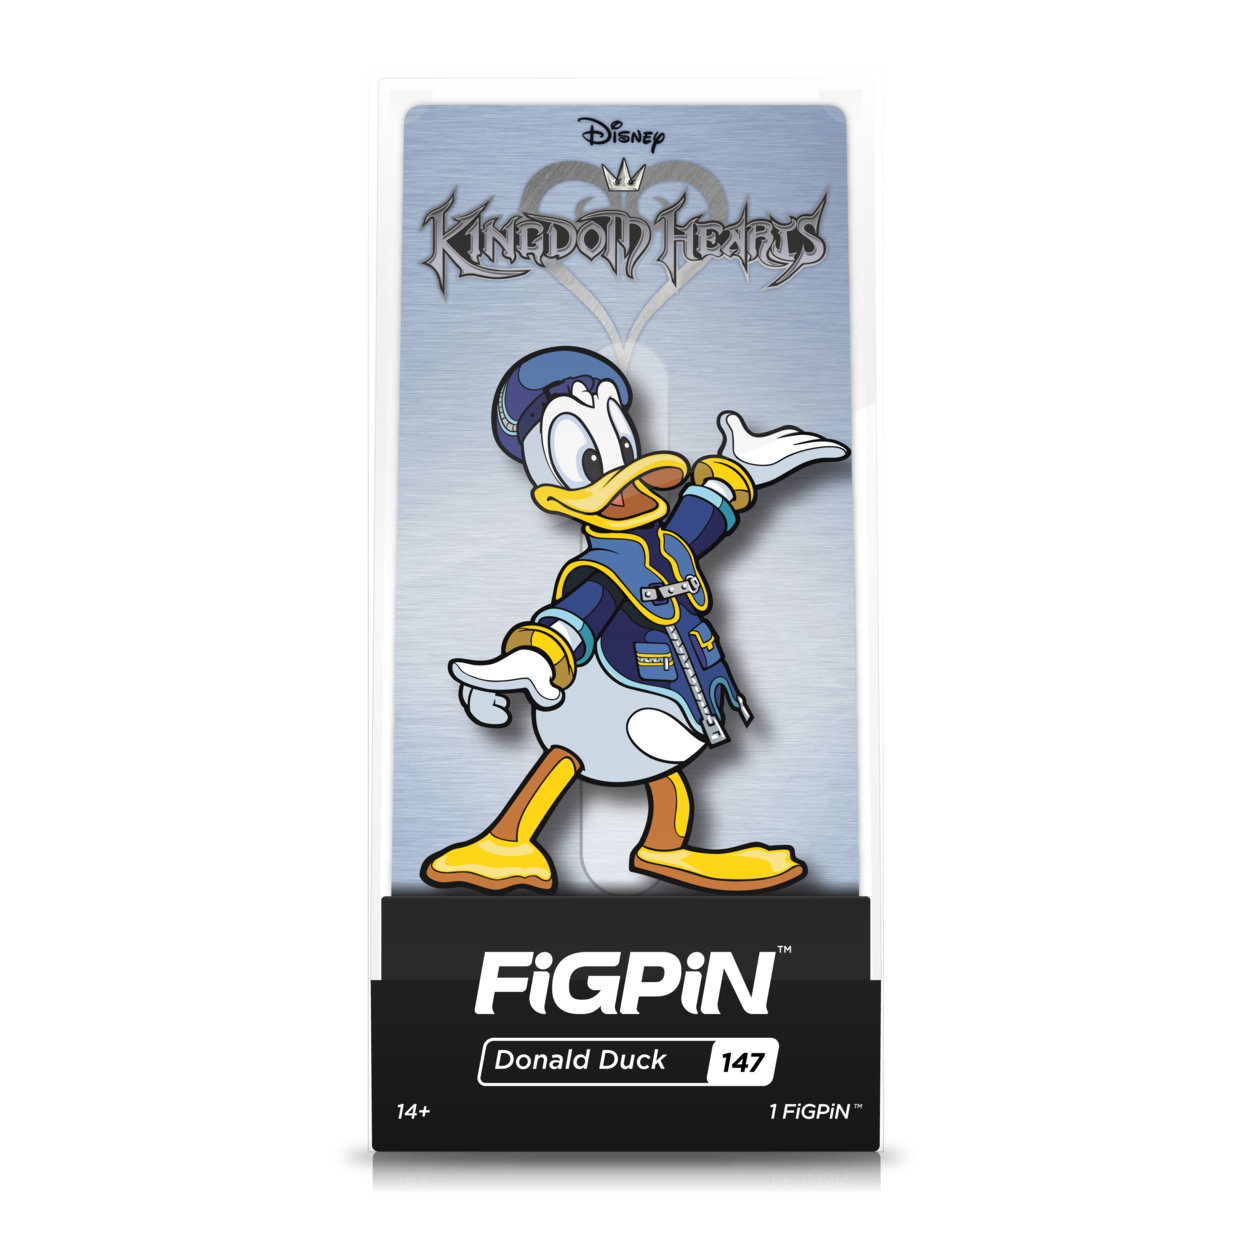 Disney Kingdom Hearts: FiGPiN Enamel Pin Donald Duck [147]